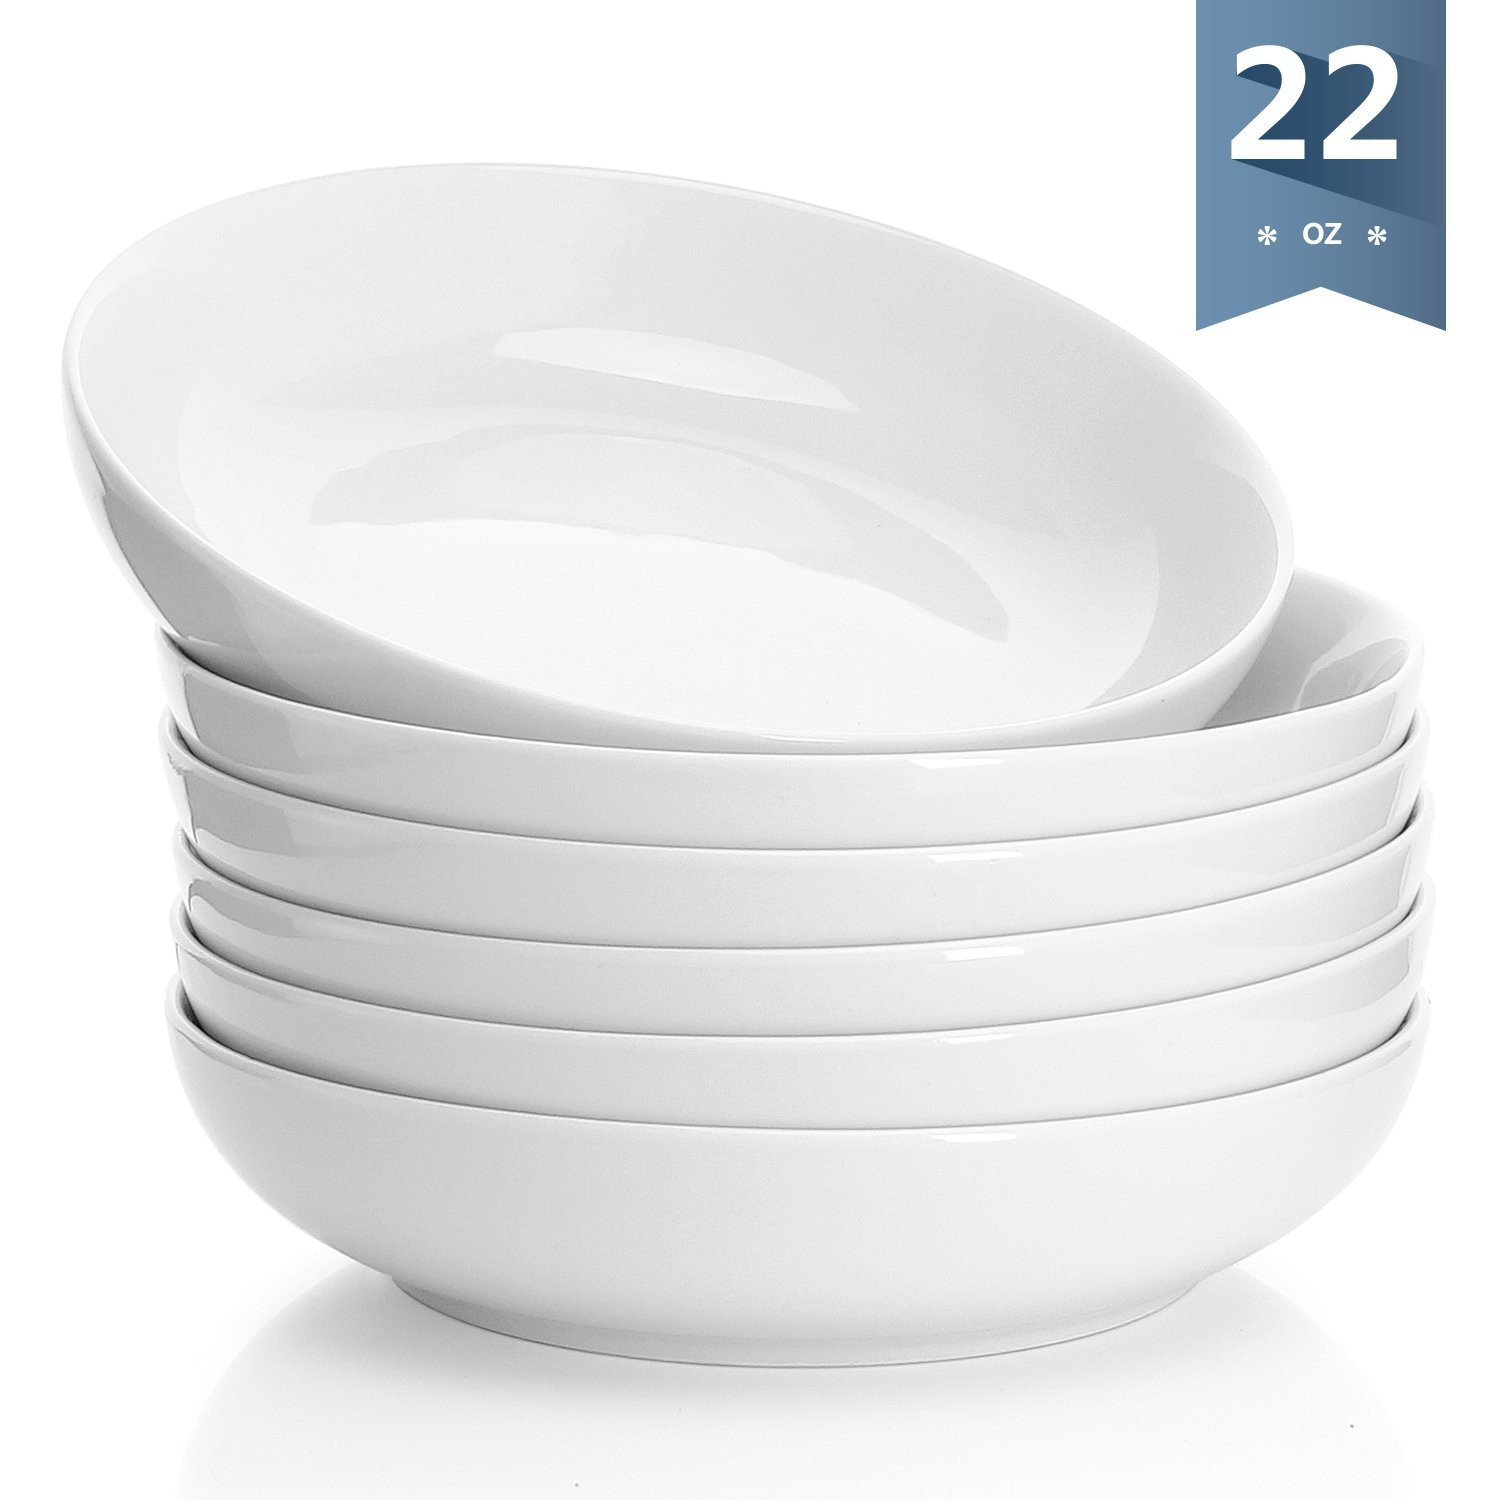 Sweese 1309 Porcelain Salad/Pasta Bowls - 22 Ounce - Set of 6, White